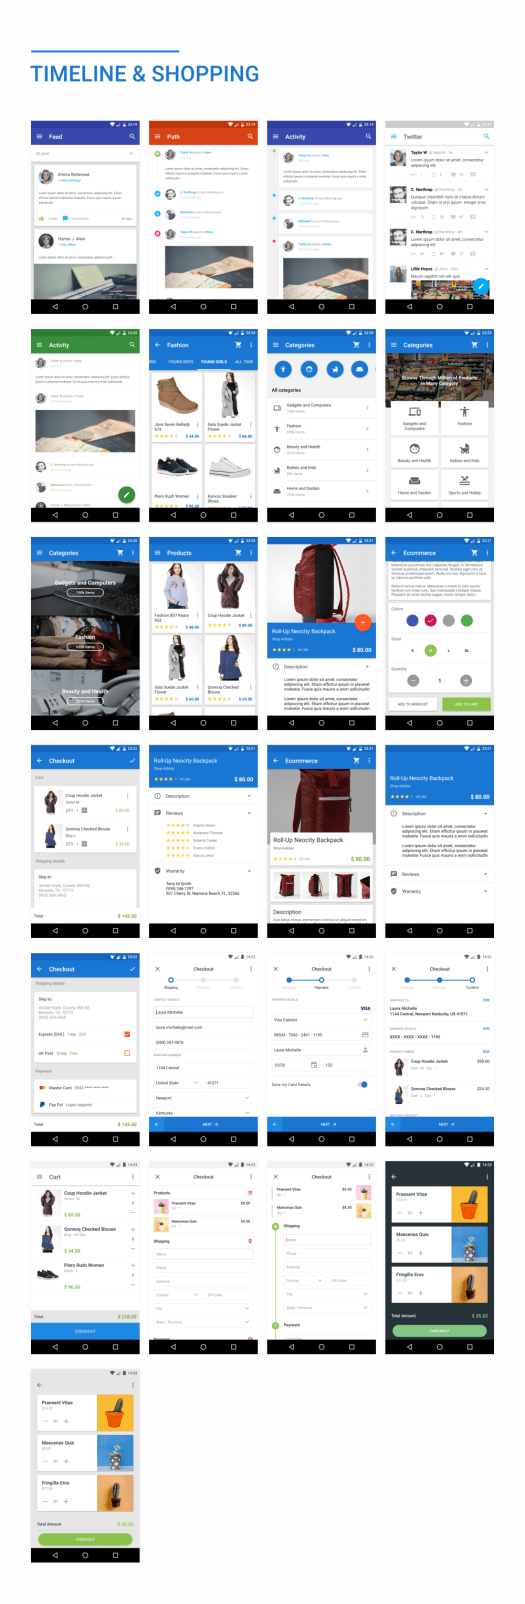 MaterialX - Android Material Design UI Components 2.6 - 44